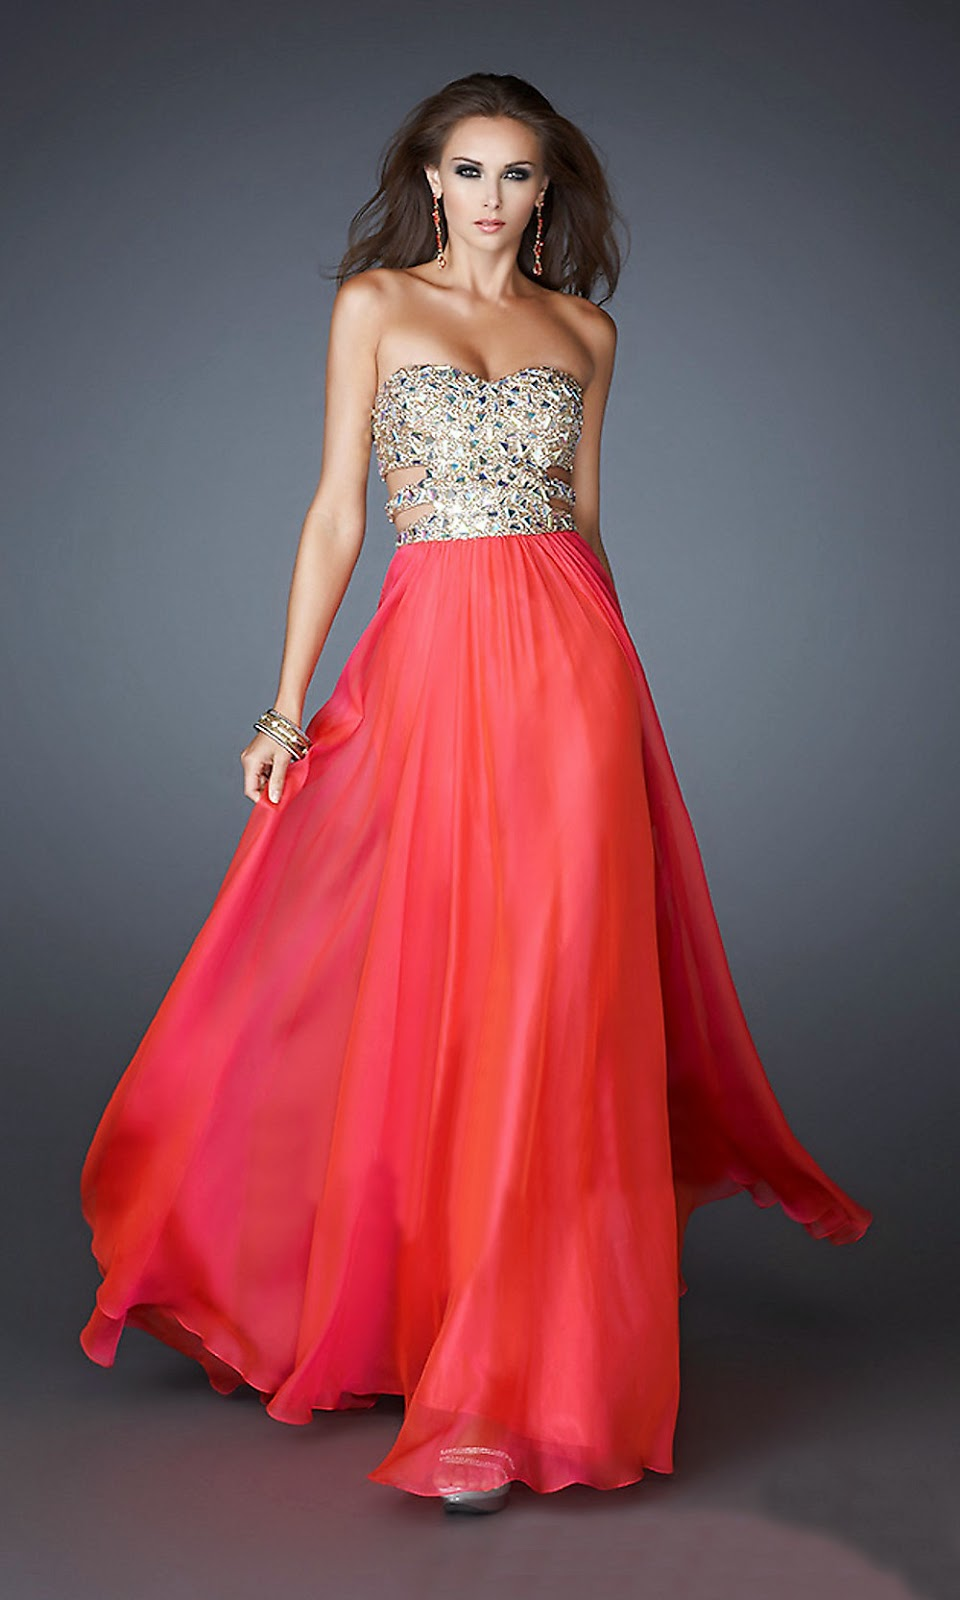 Prom Dresses Pictures Only 40